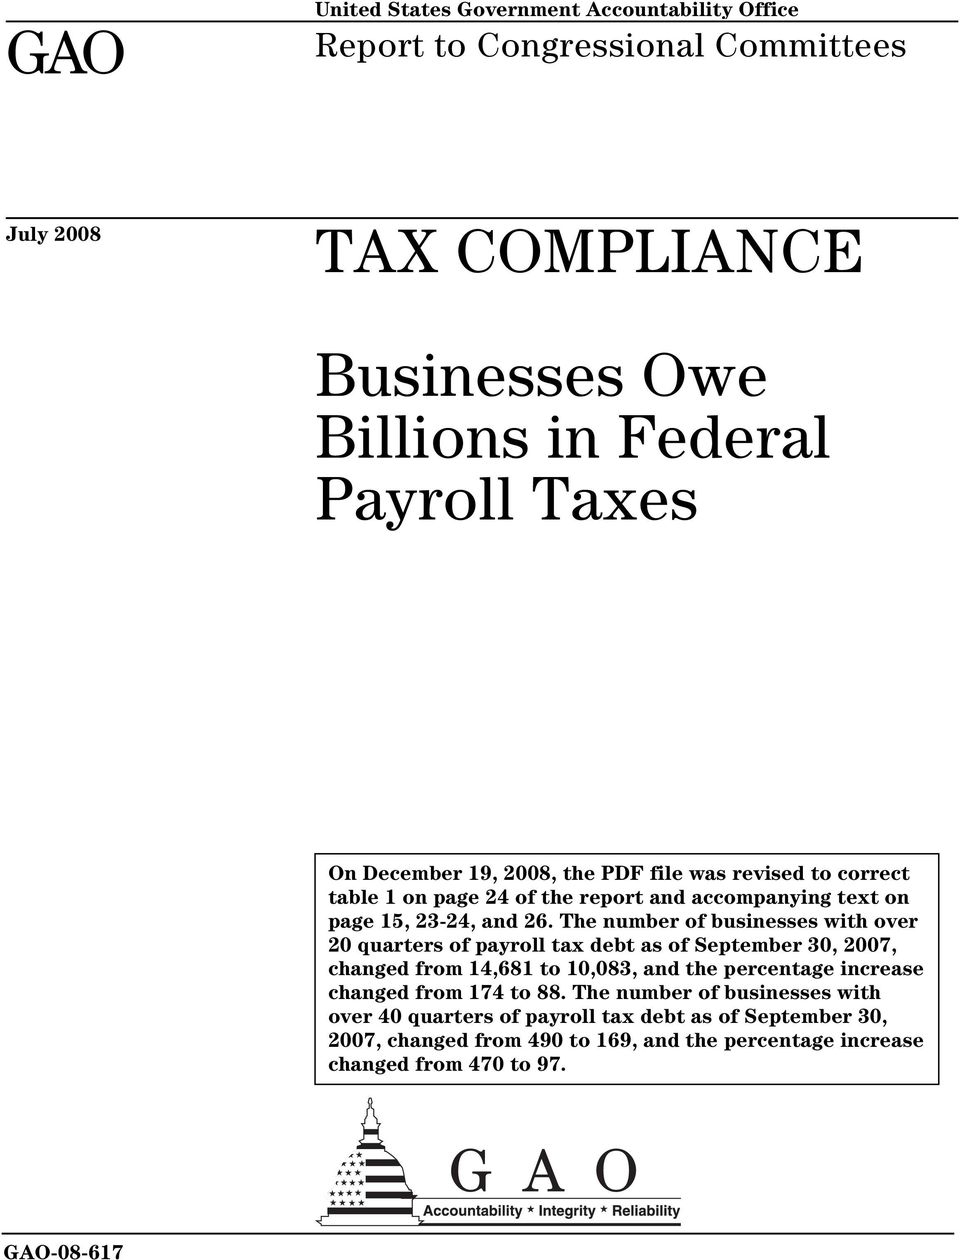 The number of businesses with over 20 quarters of payroll tax debt as of September 30, 2007, changed from 14,681 to 10,083, and the percentage increase changed